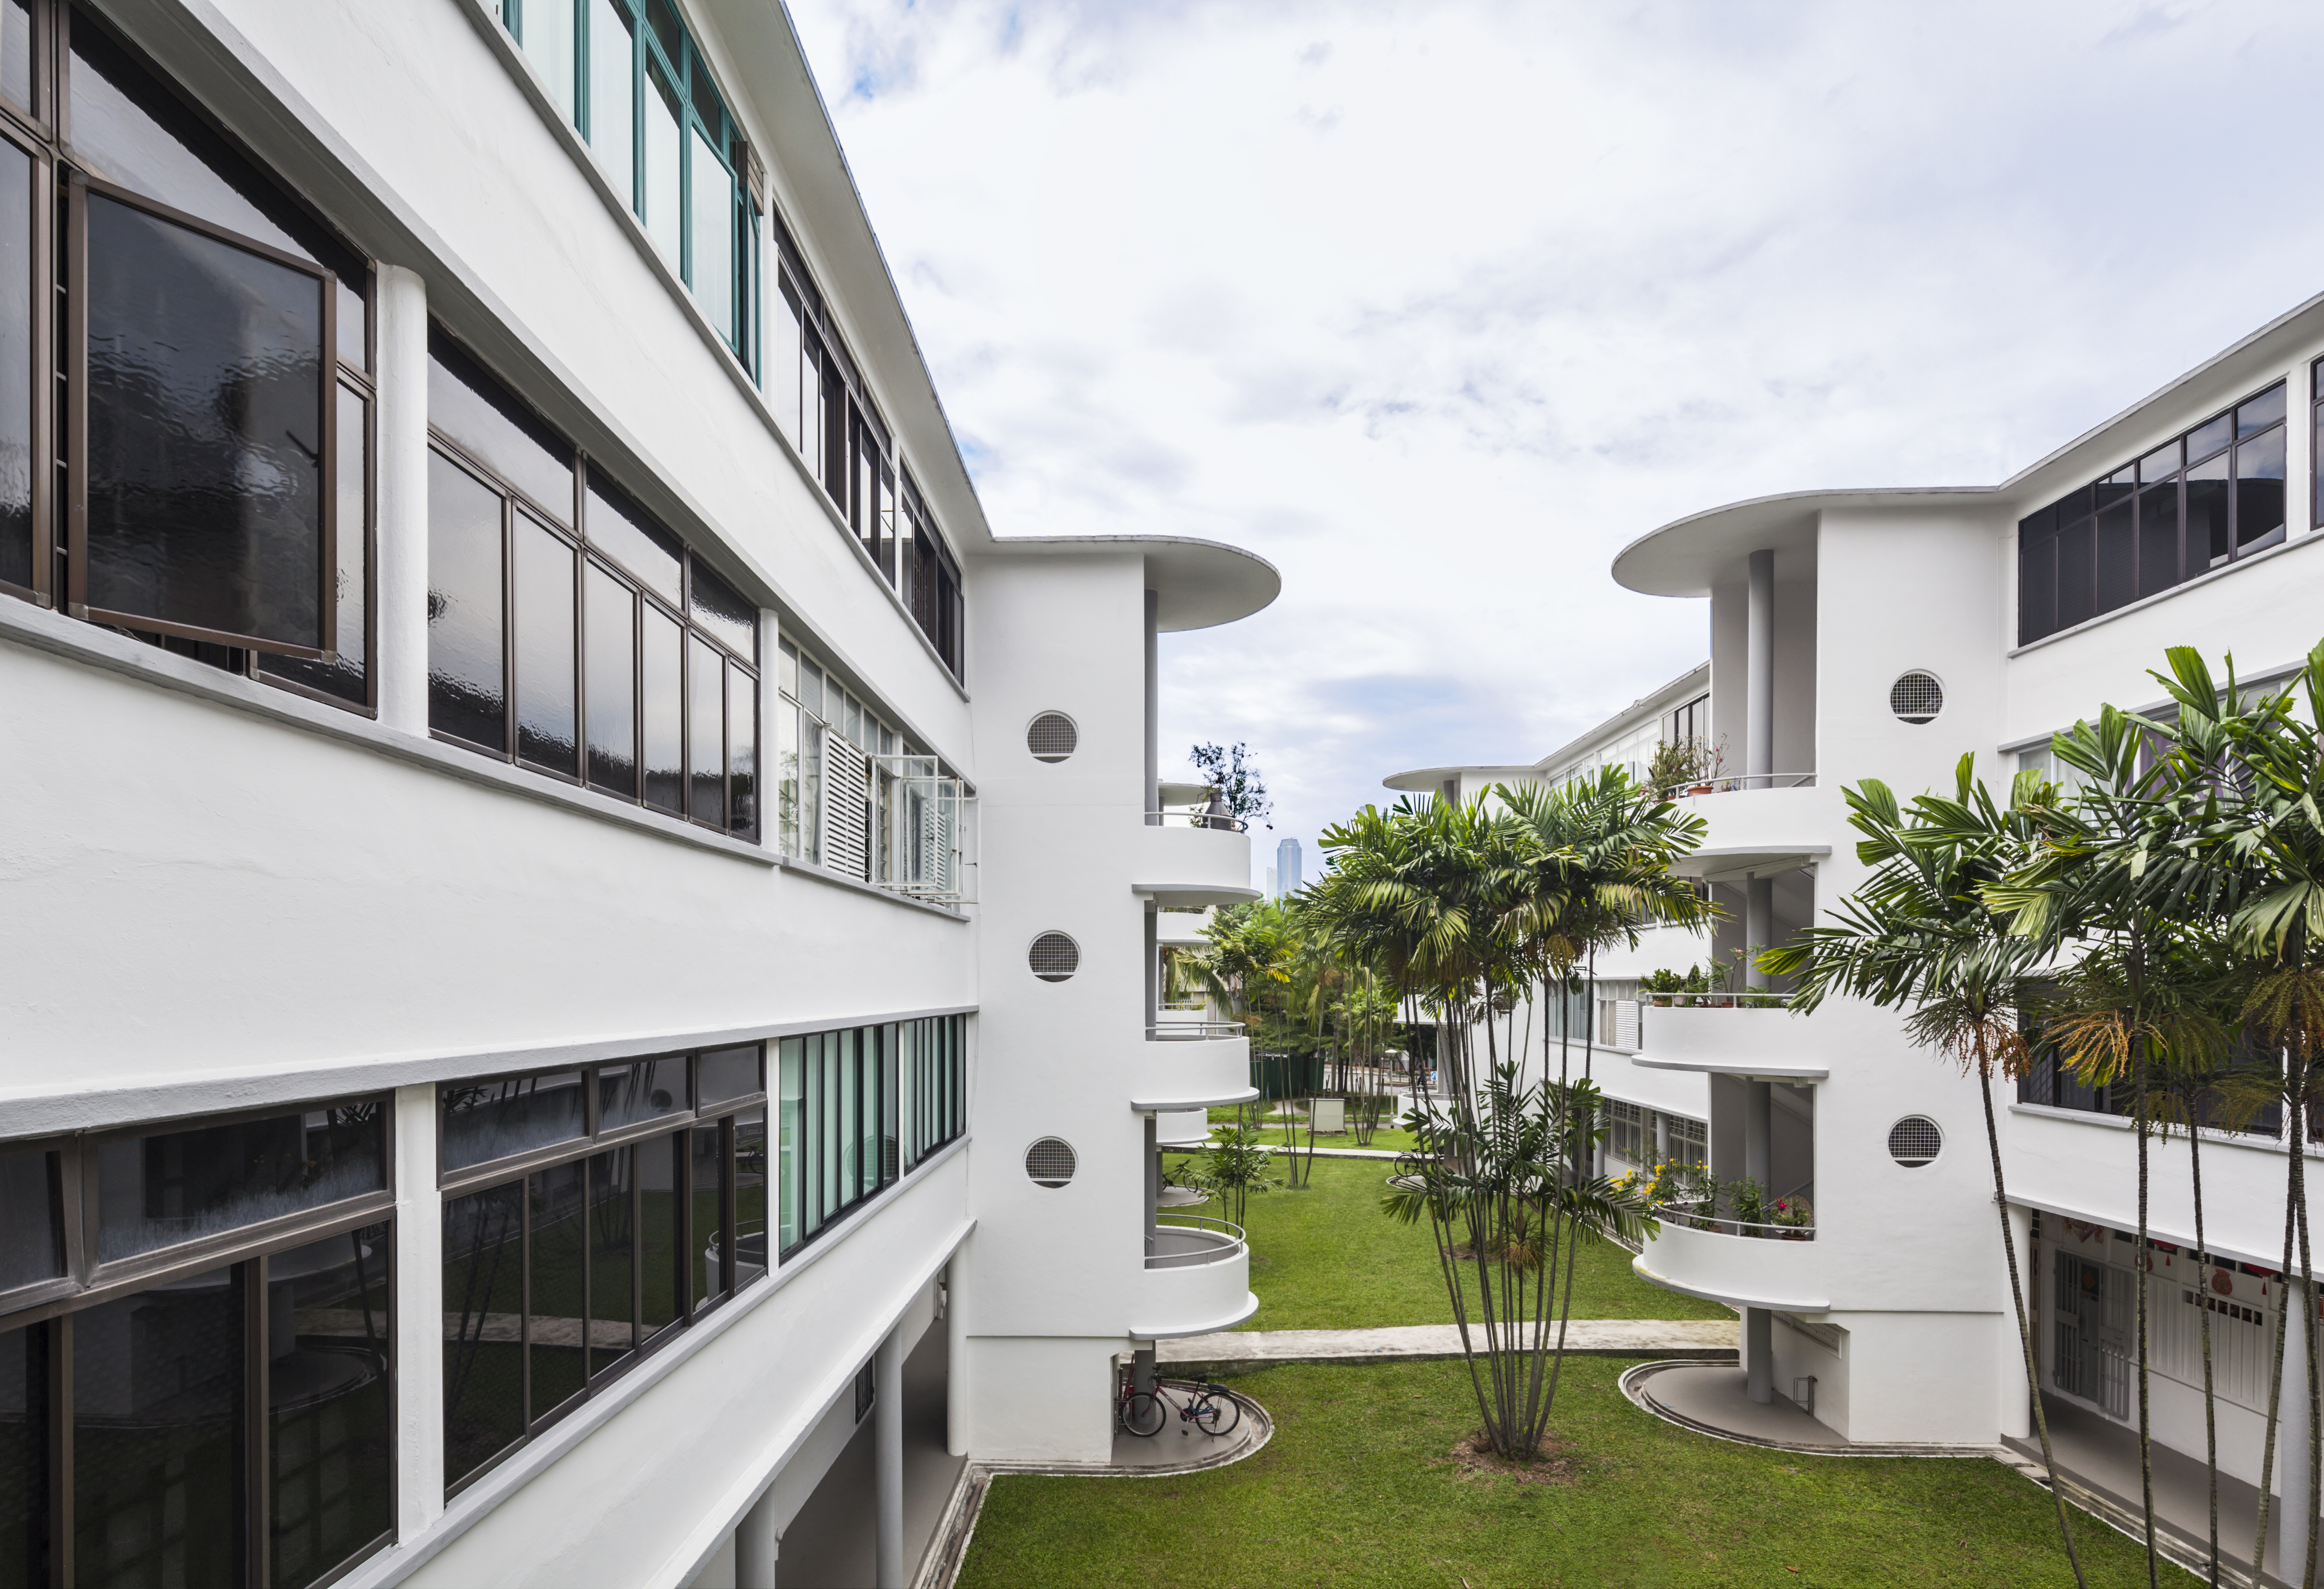 prices of private residential properties in Singapore have gone up by 0.7 per cent in the third quarter